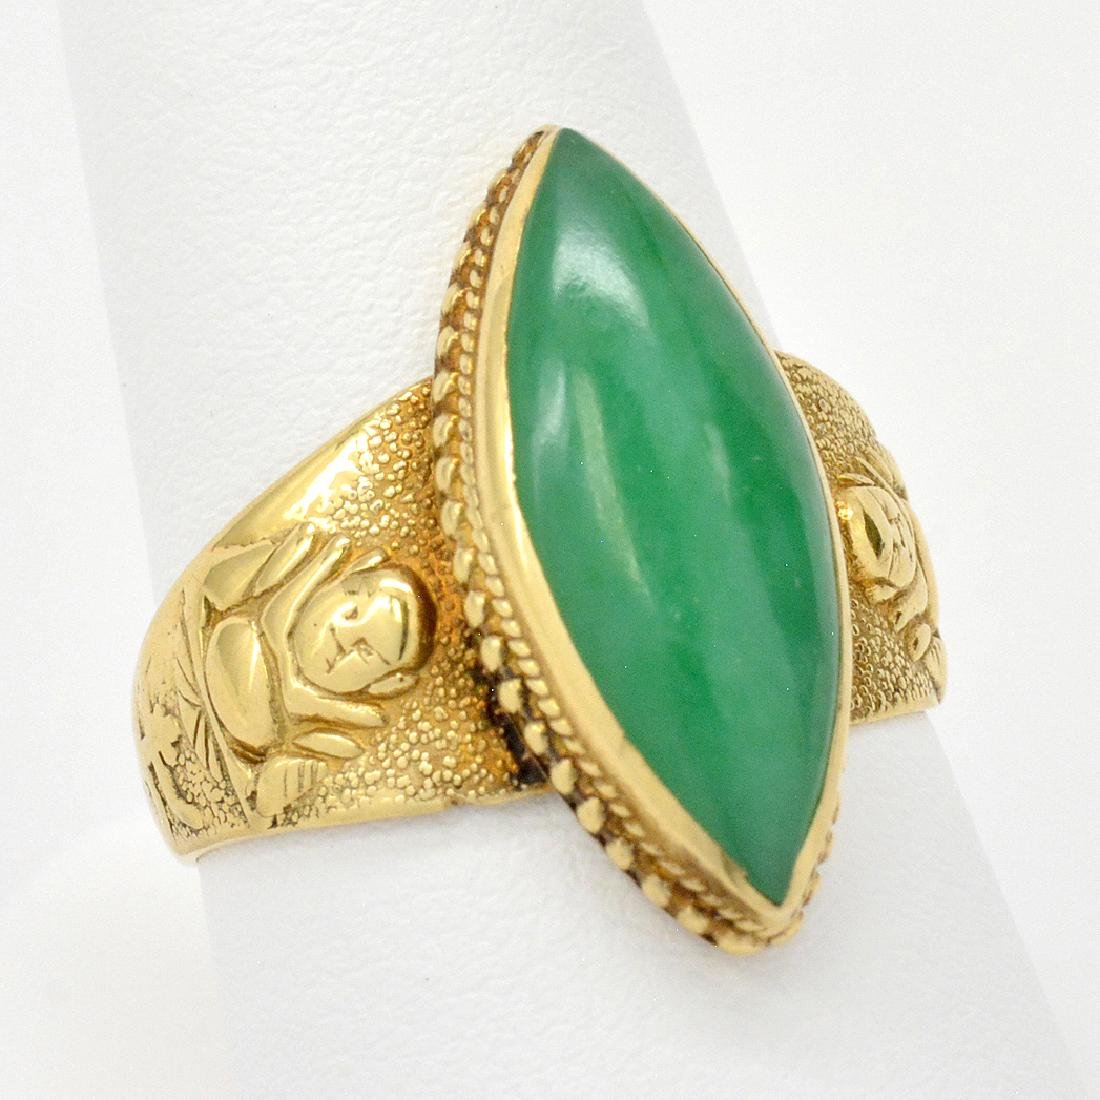 18K Gold Marquise-Cut Jade Ring With Buddhas